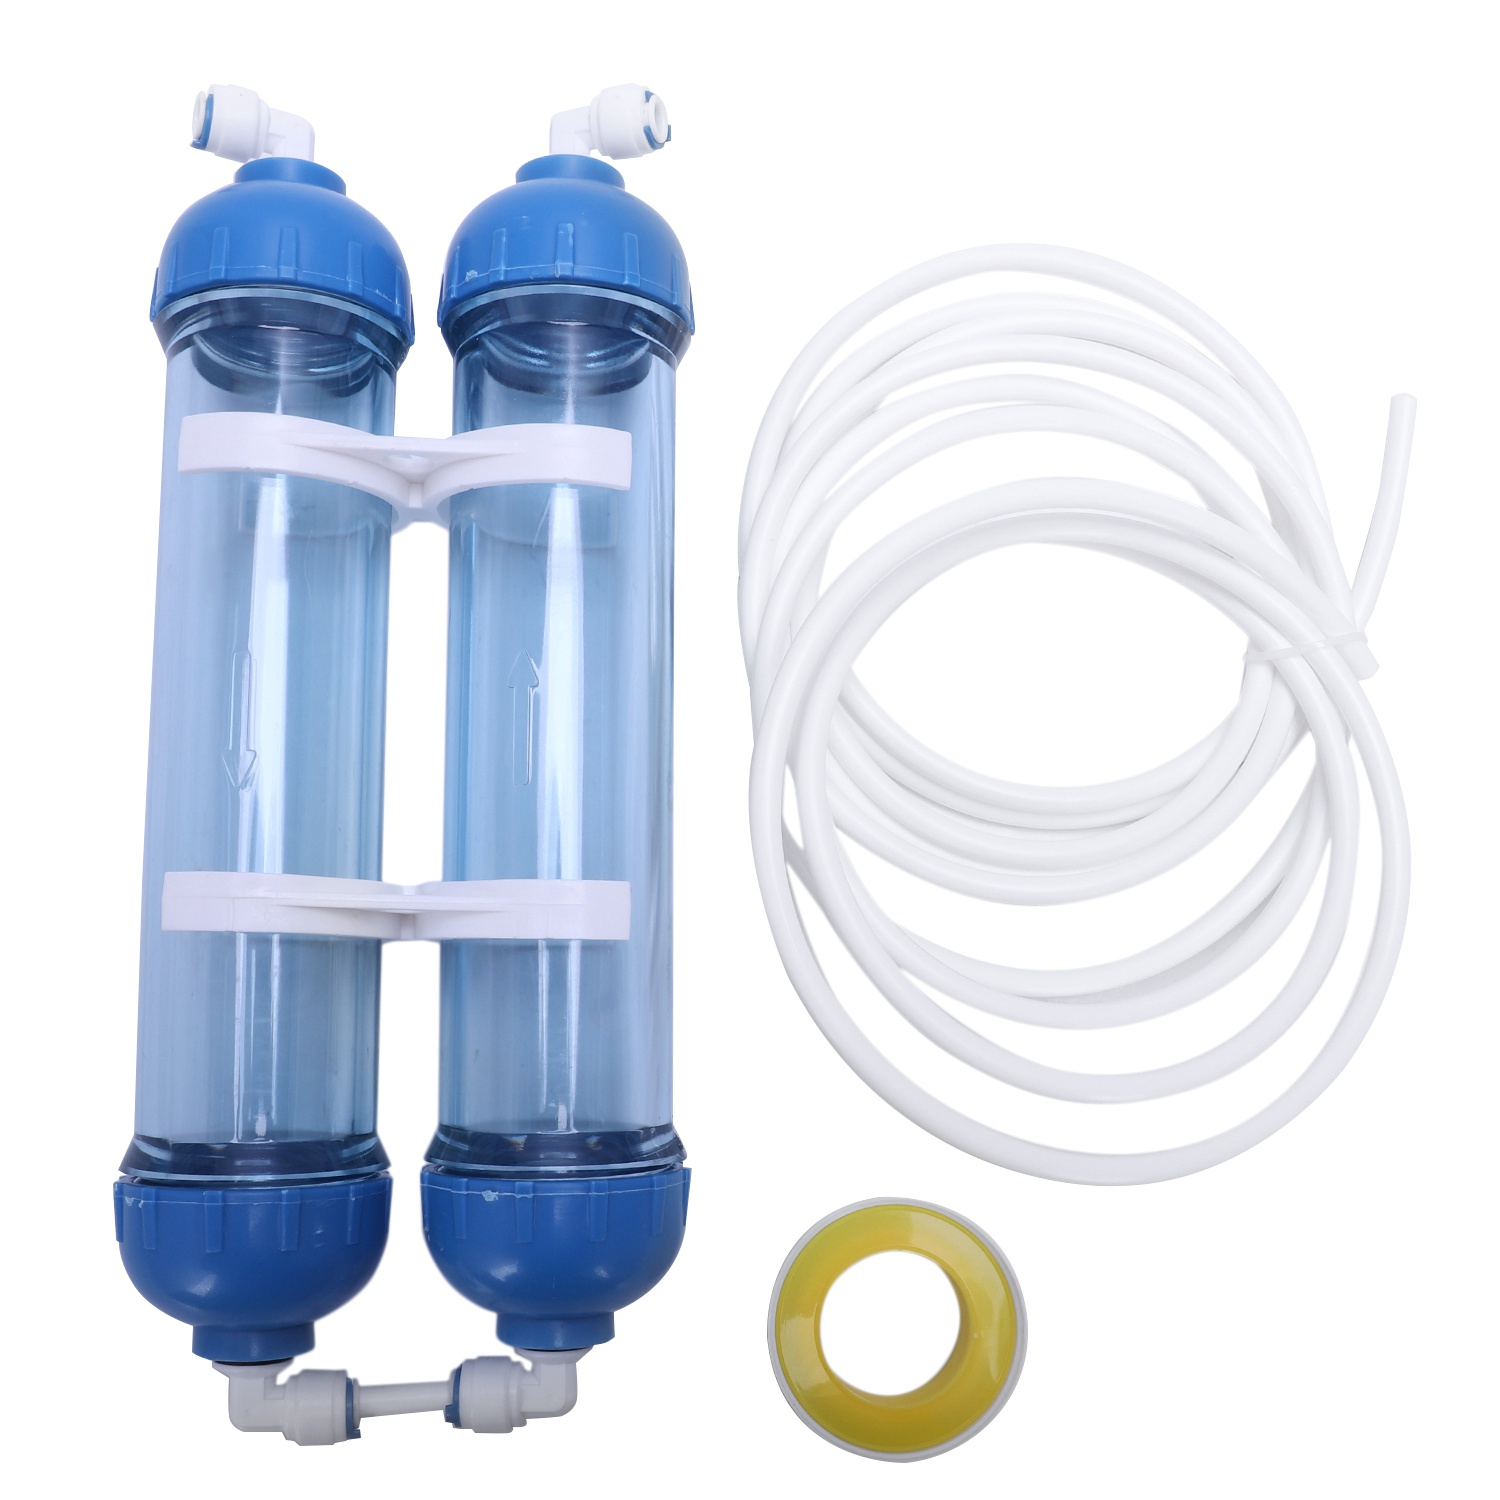 Water Filter 2Pcs T33 Cartridge Housing Diy T33 Shell Filter Bottle 4Pcs Fittings Water Purifier For Reverse Osmosis SystemWater Filter 2Pcs T33 Cartridge Housing Diy T33 Shell Filter Bottle 4Pcs Fittings Water Purifier For Reverse Osmosis System